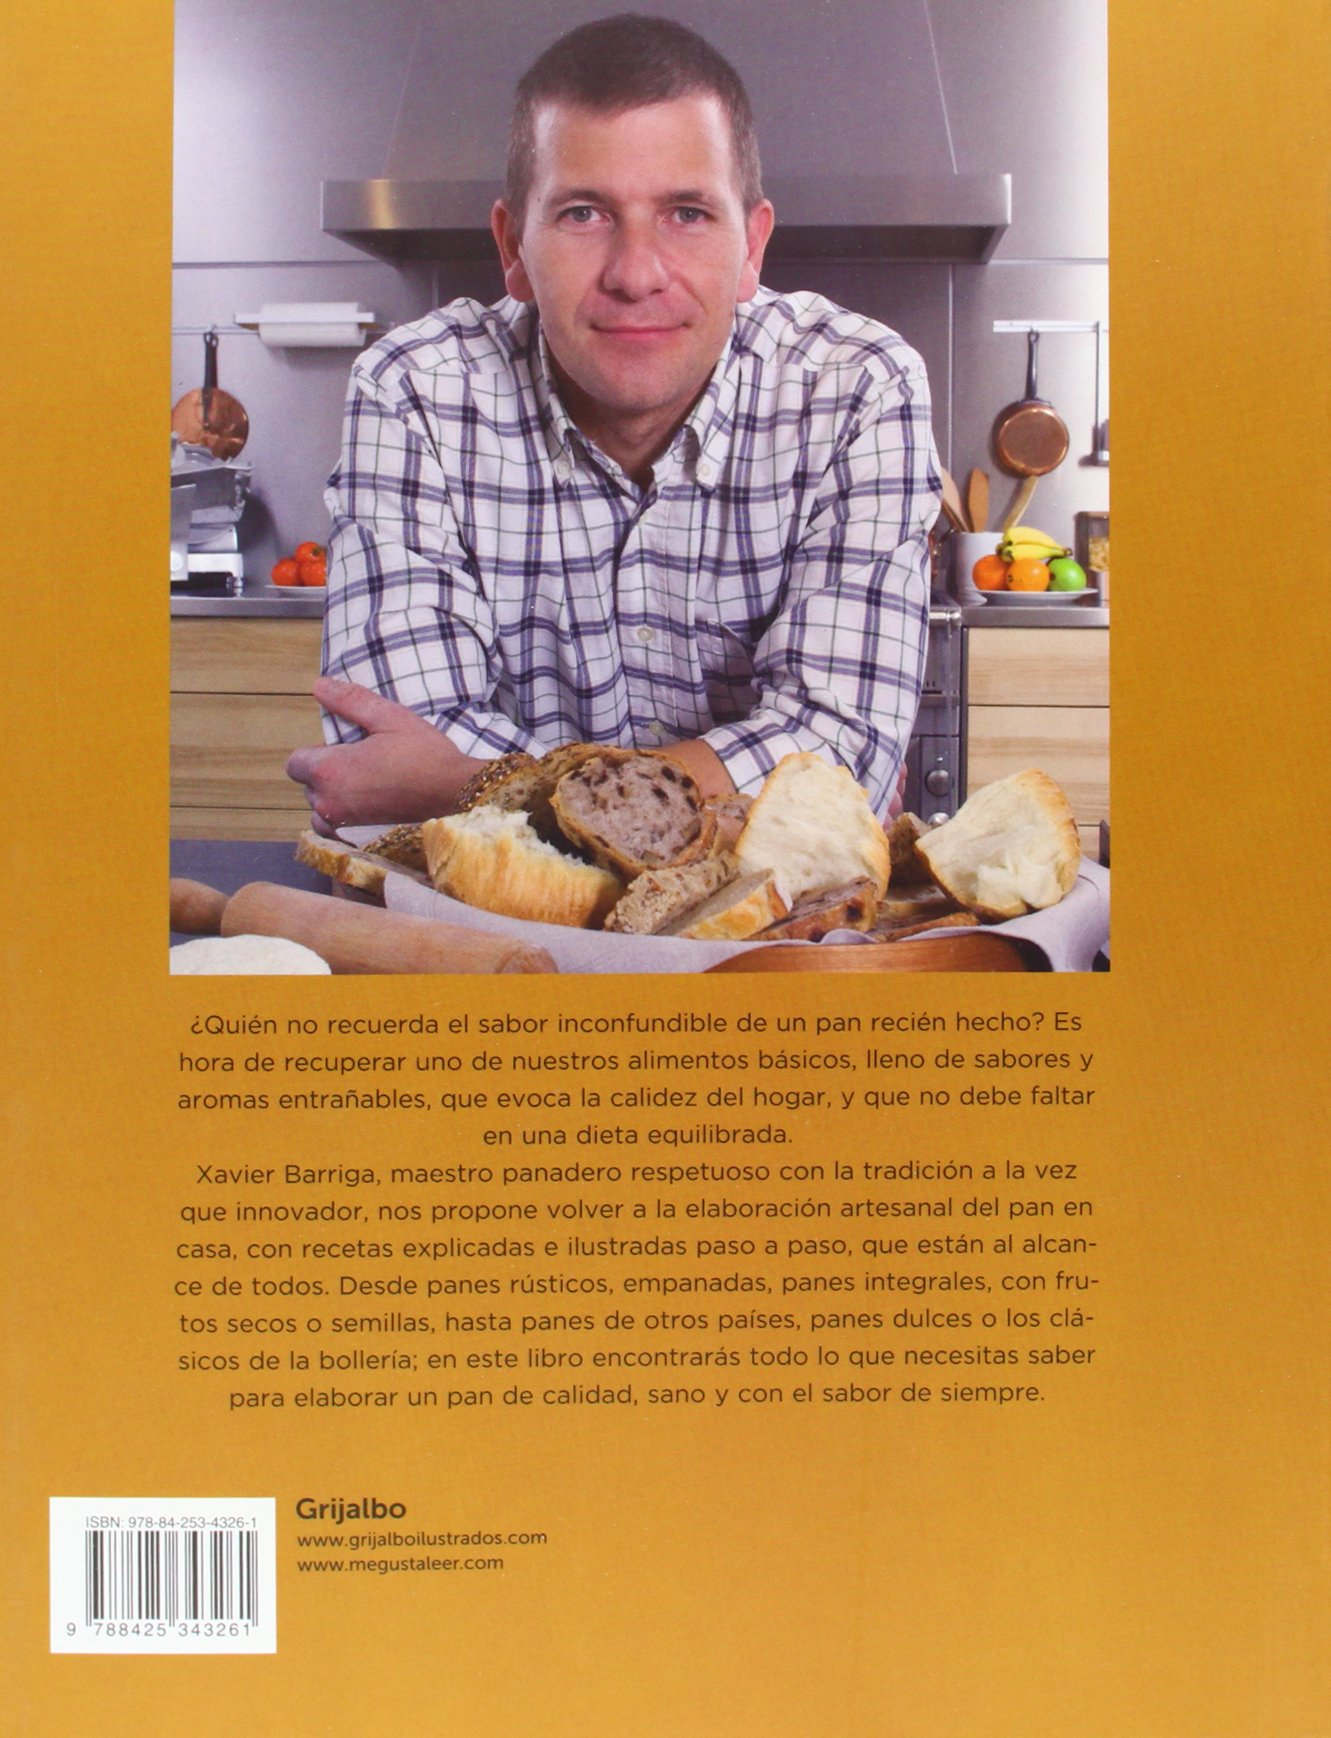 Pan / Bread: Hecho en casa y con el sabor de siempre / Homemade Taste Better (Spanish Edition): Xavier Barriga, Marc Verges: 9788425343261: Amazon.com: ...